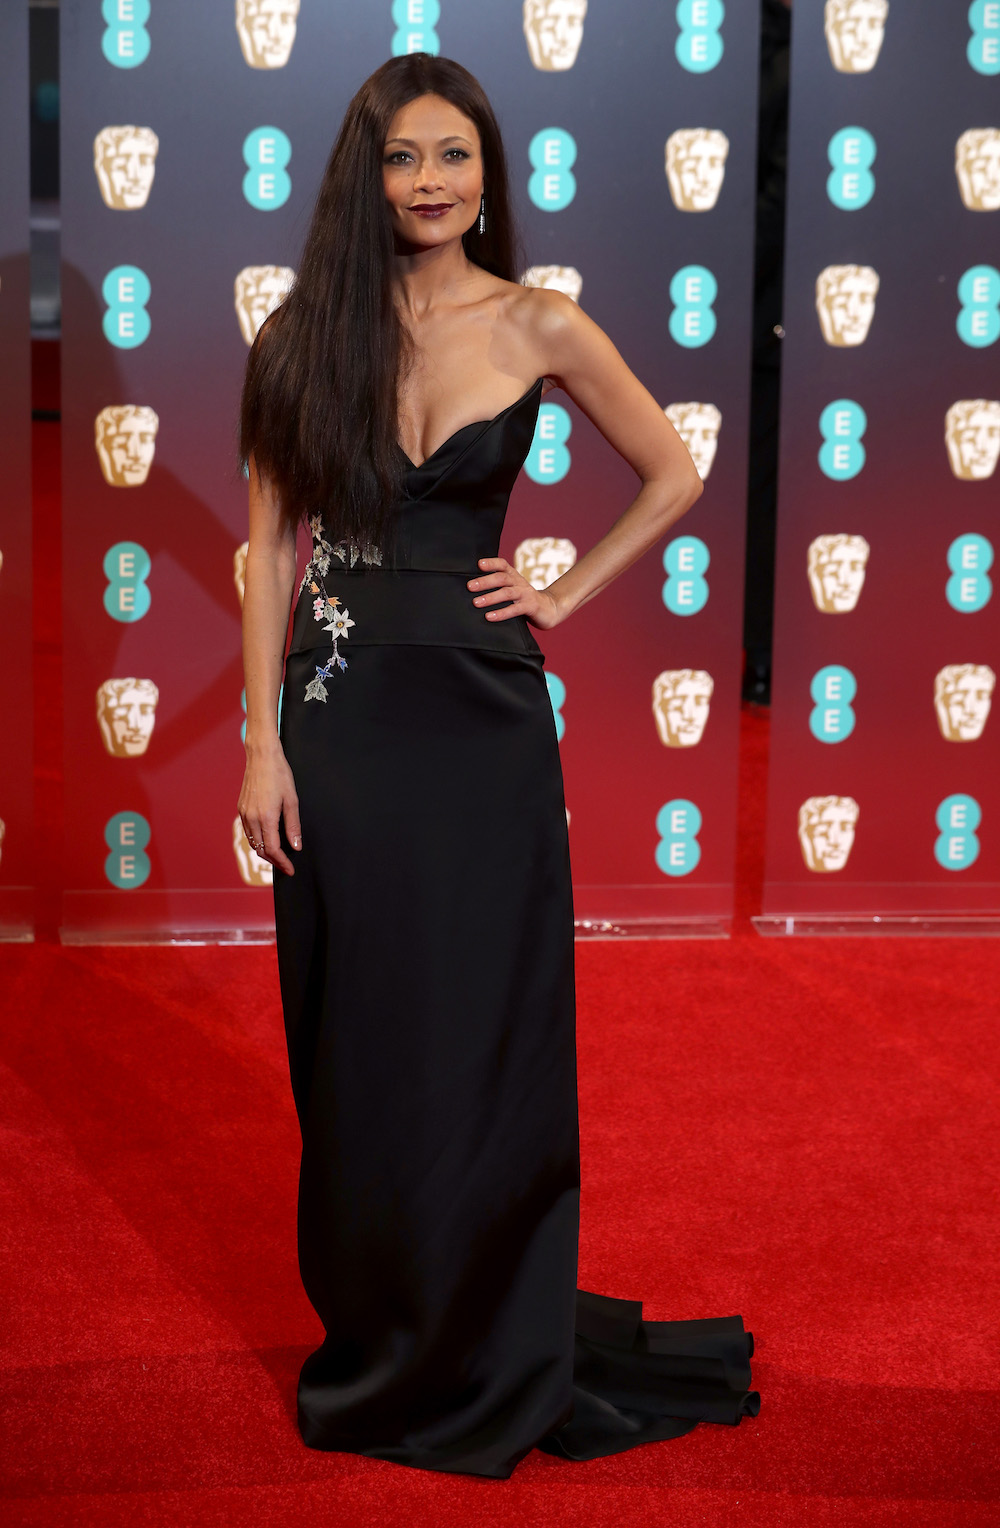 thandie-newton-bafta-awards-2017.jpg